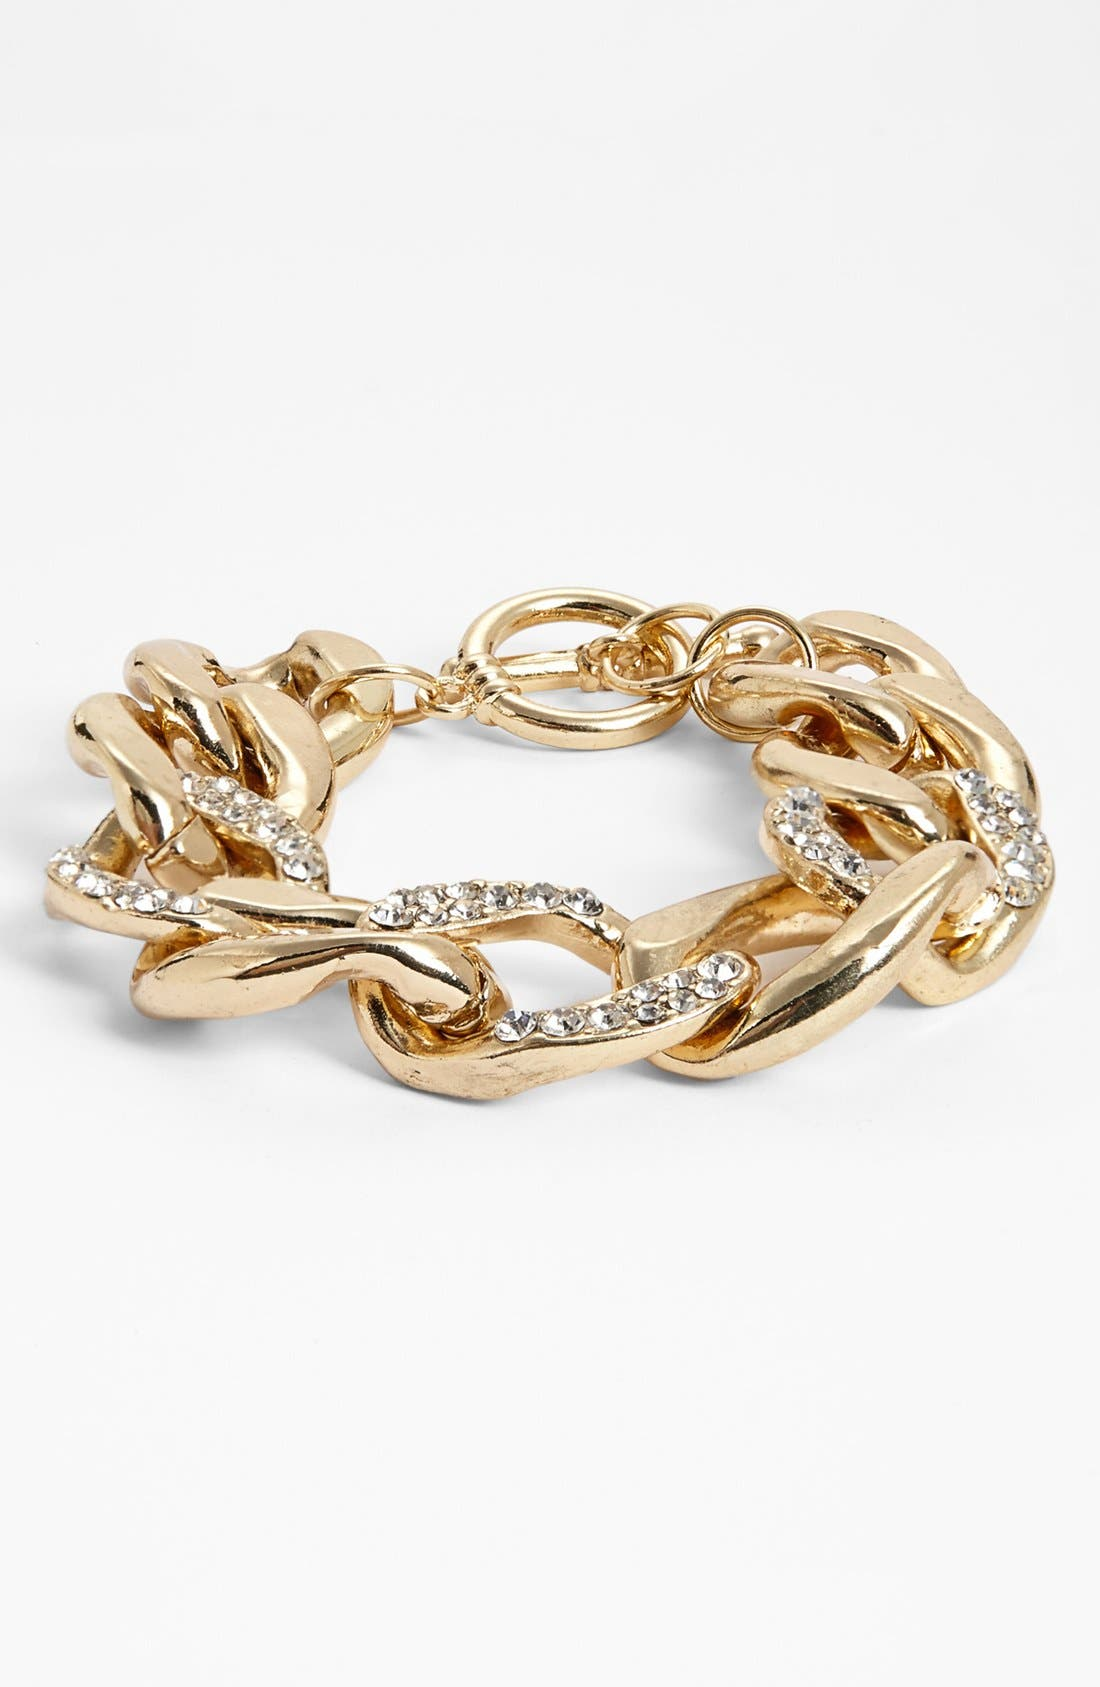 Alternate Image 1 Selected - Stephan & Co. Rhinestone Chain Link Bracelet (Juniors) (Online Only)